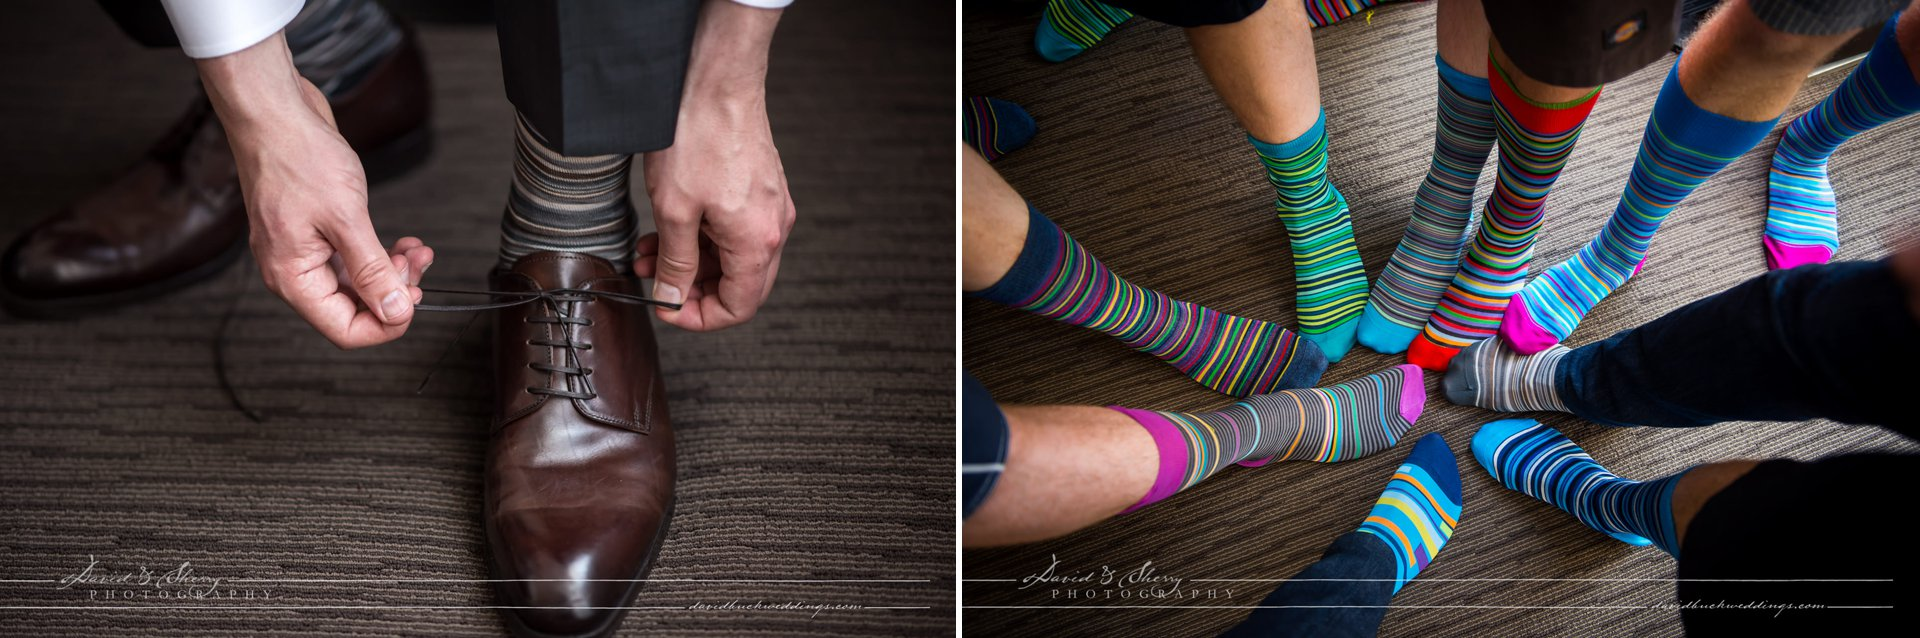 David & Sherry Photography - Groom's Fancy Socks